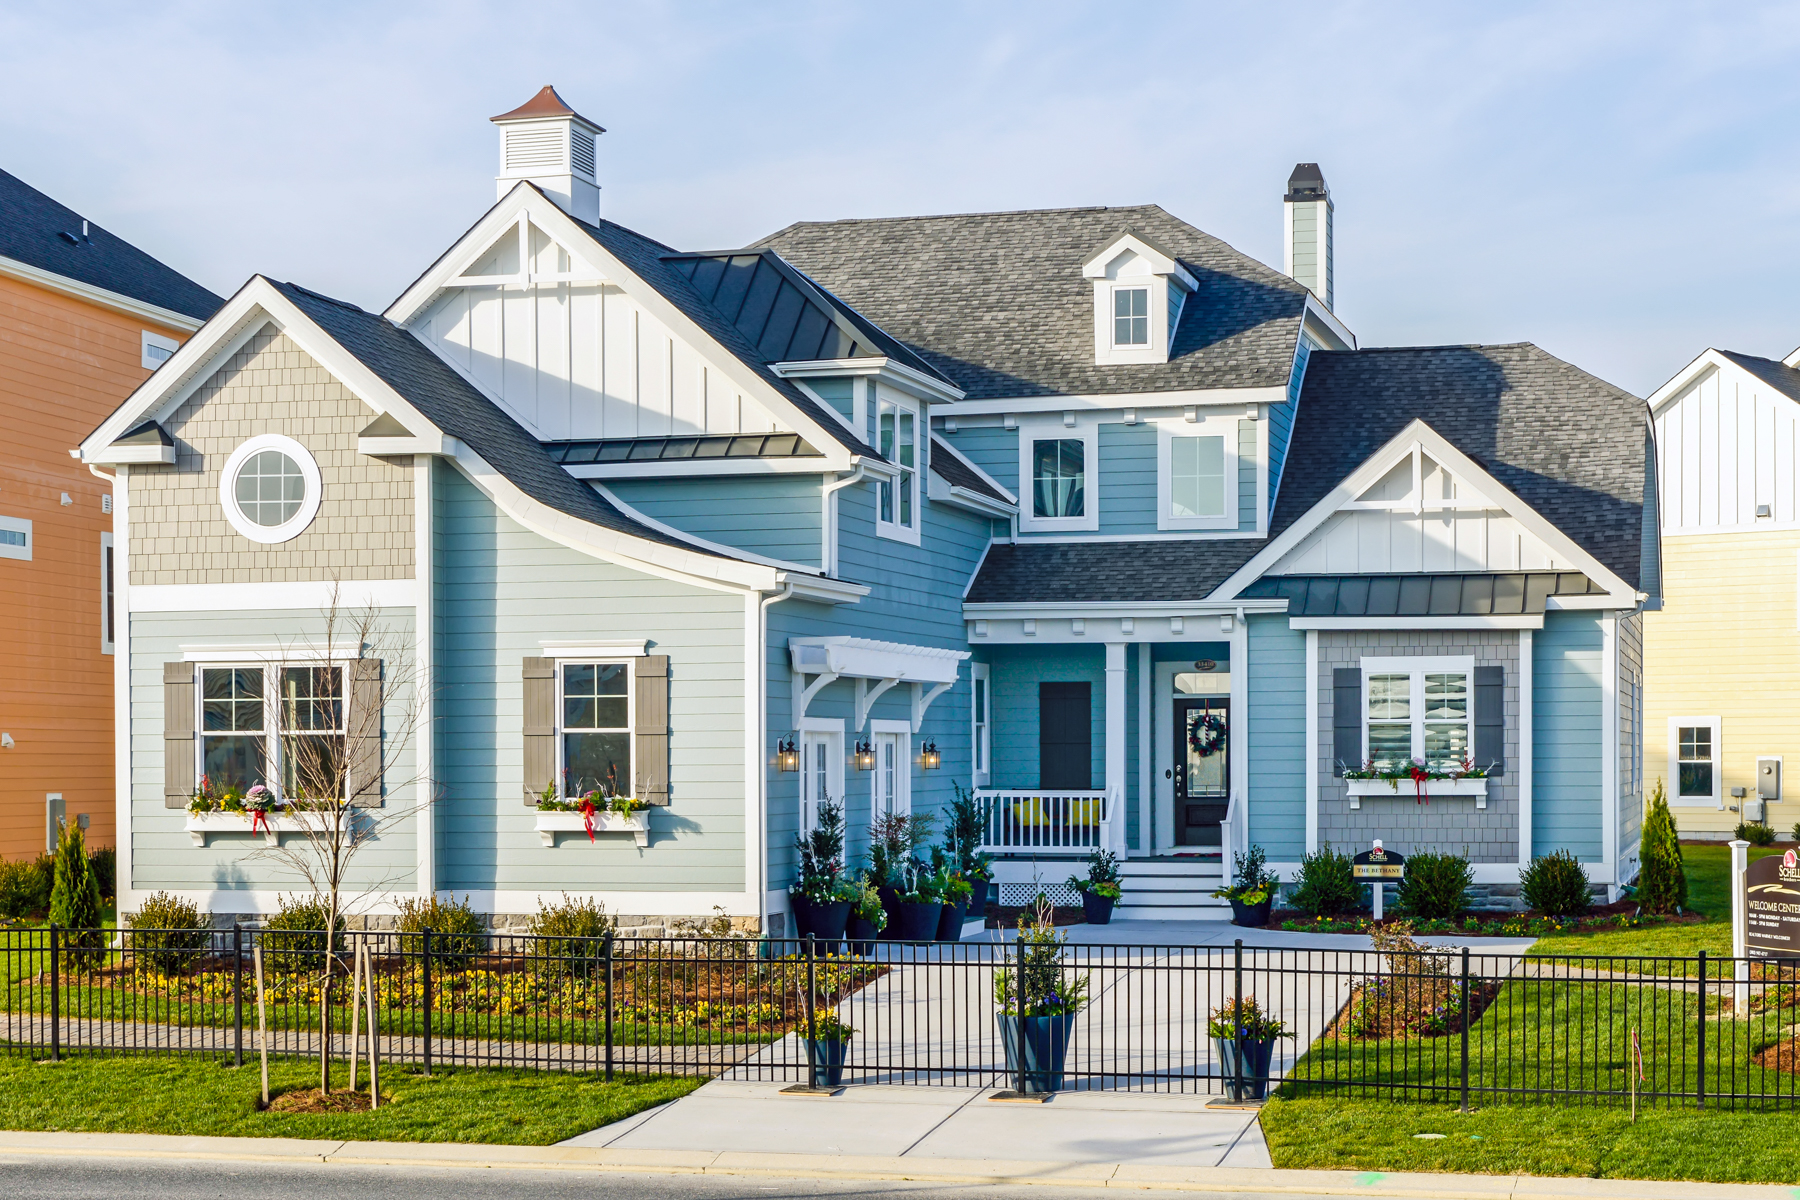 Single Family Homes for Sale at Bethany To-be-built Home Millsboro, Delaware 19966 United States